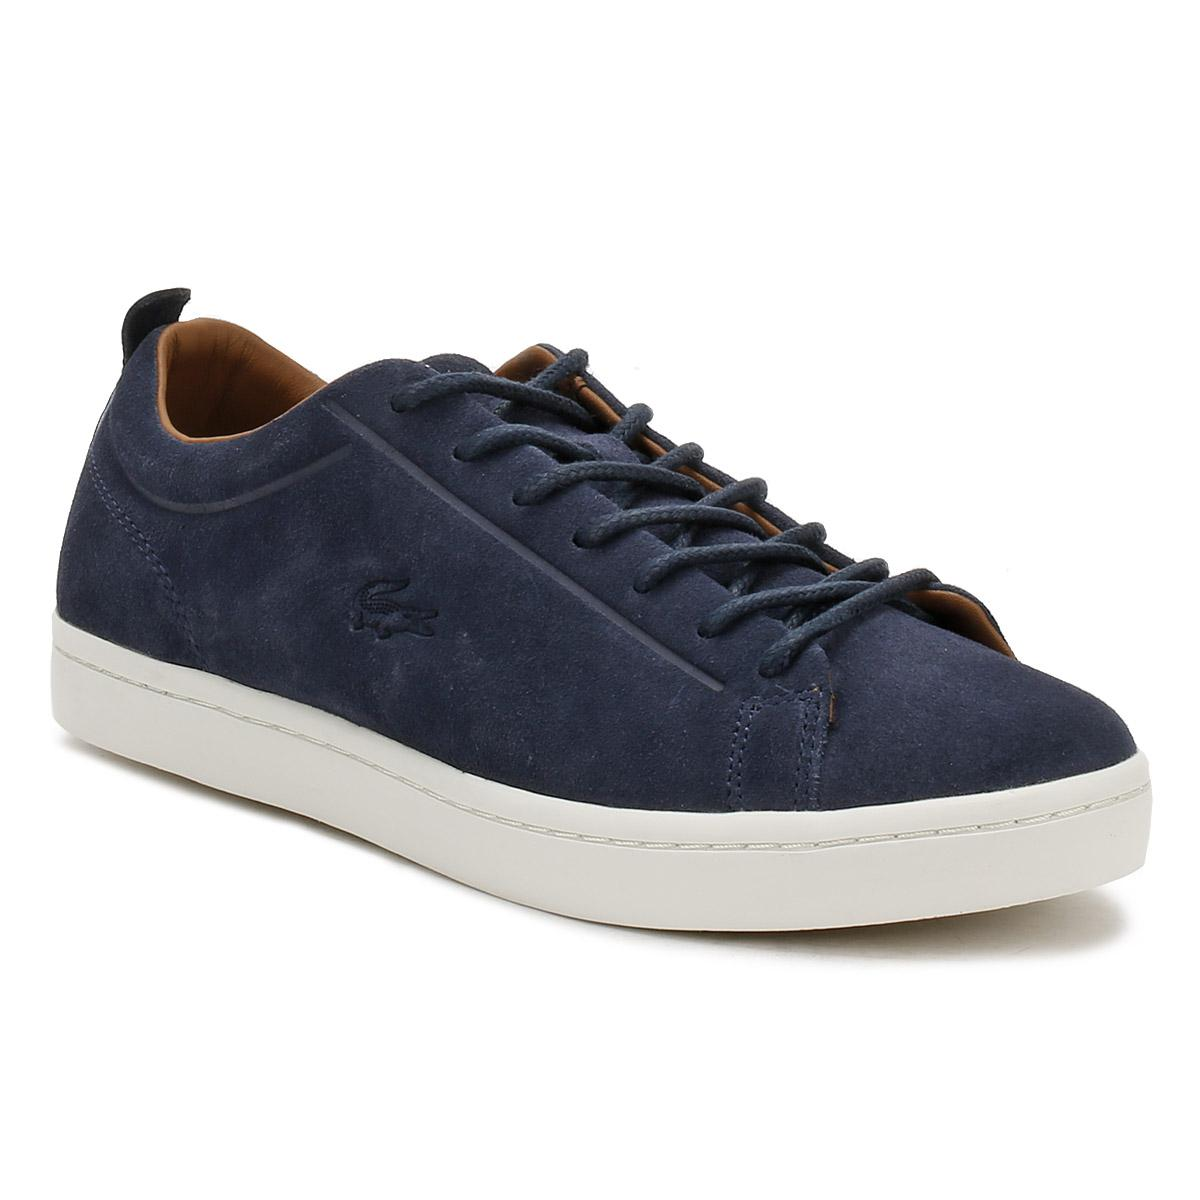 b94809111 Lyst - Lacoste Mens Navy Straightset 317 3 Trainers in Blue for Men ...